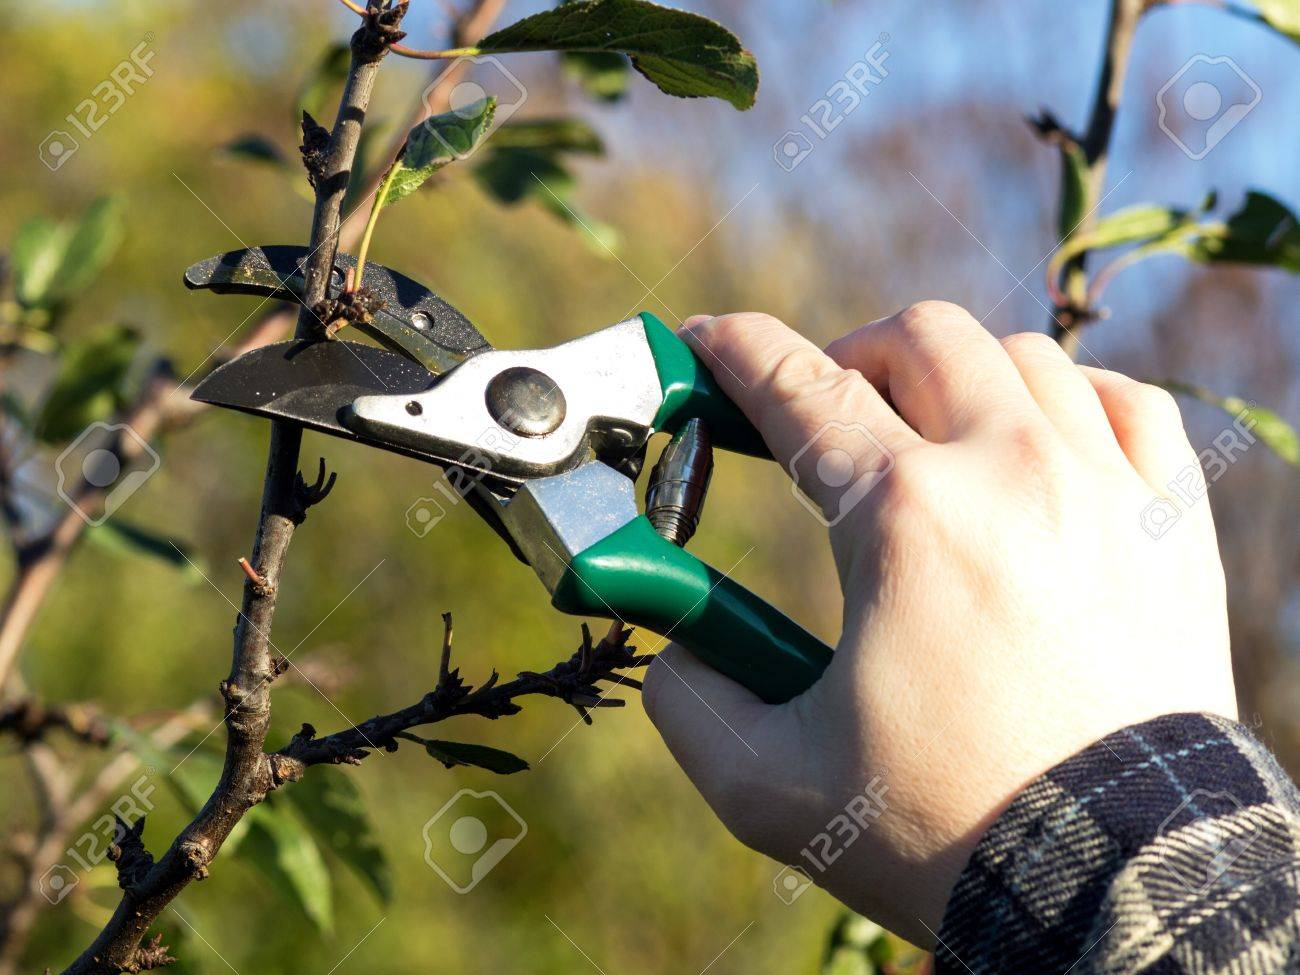 pruning apple tree in the spring Stock Photo - 16840533